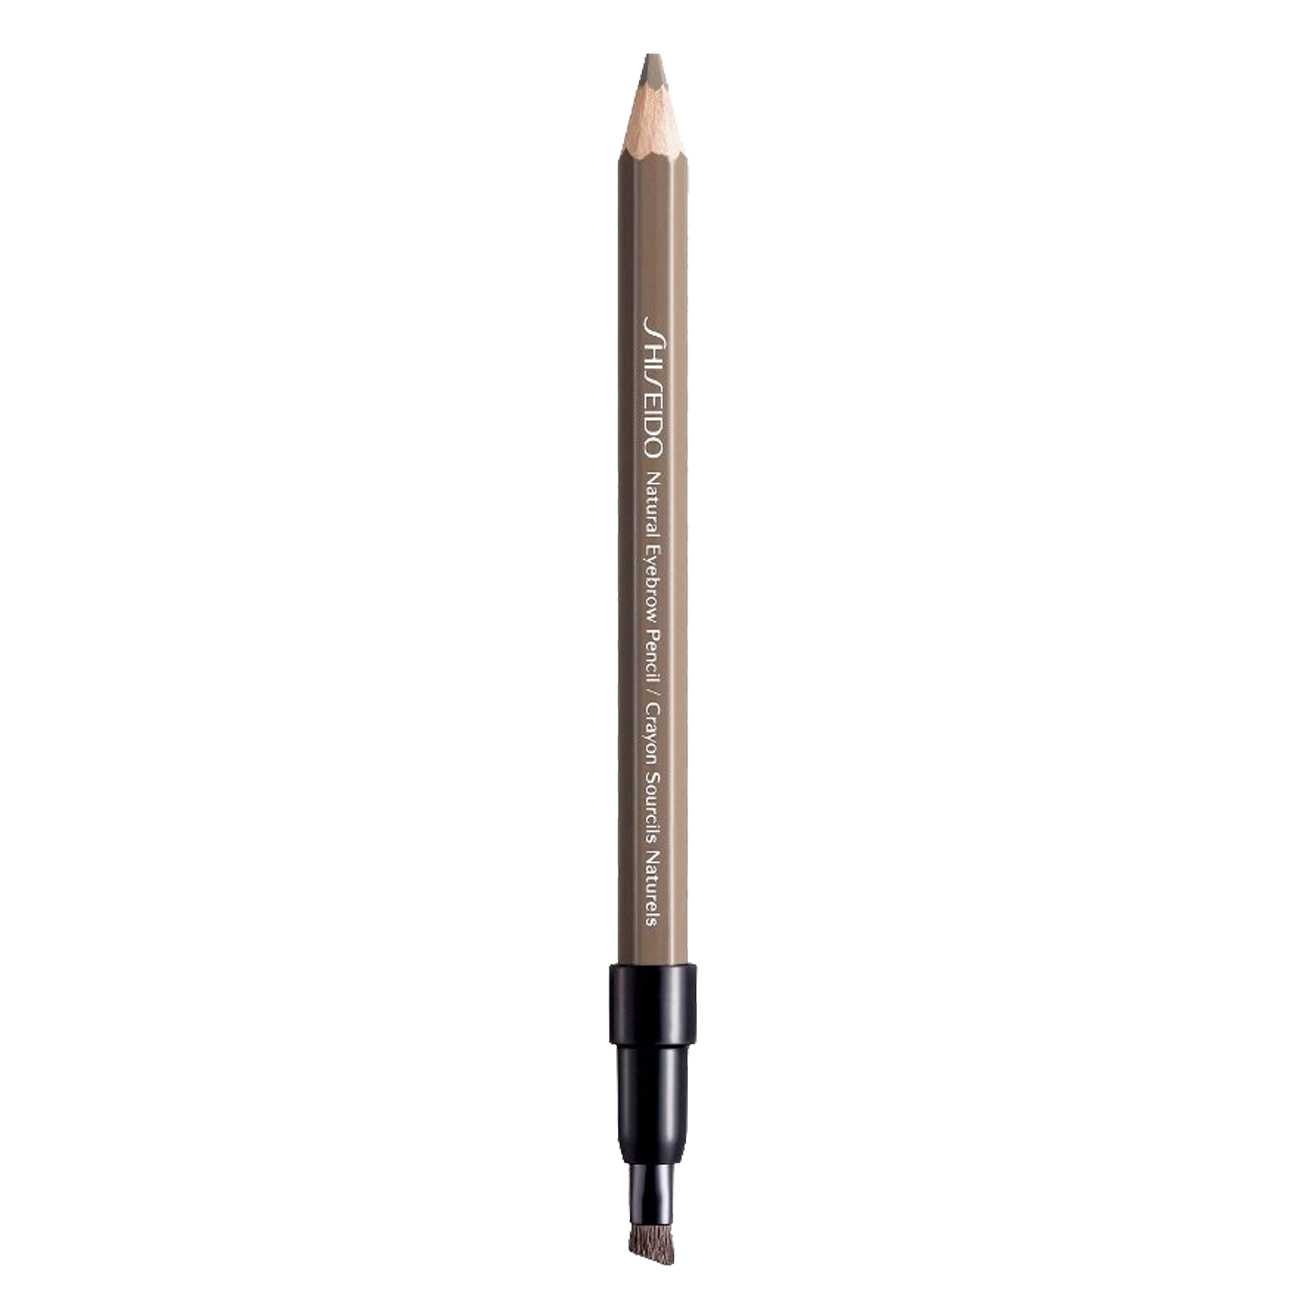 NATURAL EYEBROW PENCIL 4 G Ash Blond Br704 imagine produs